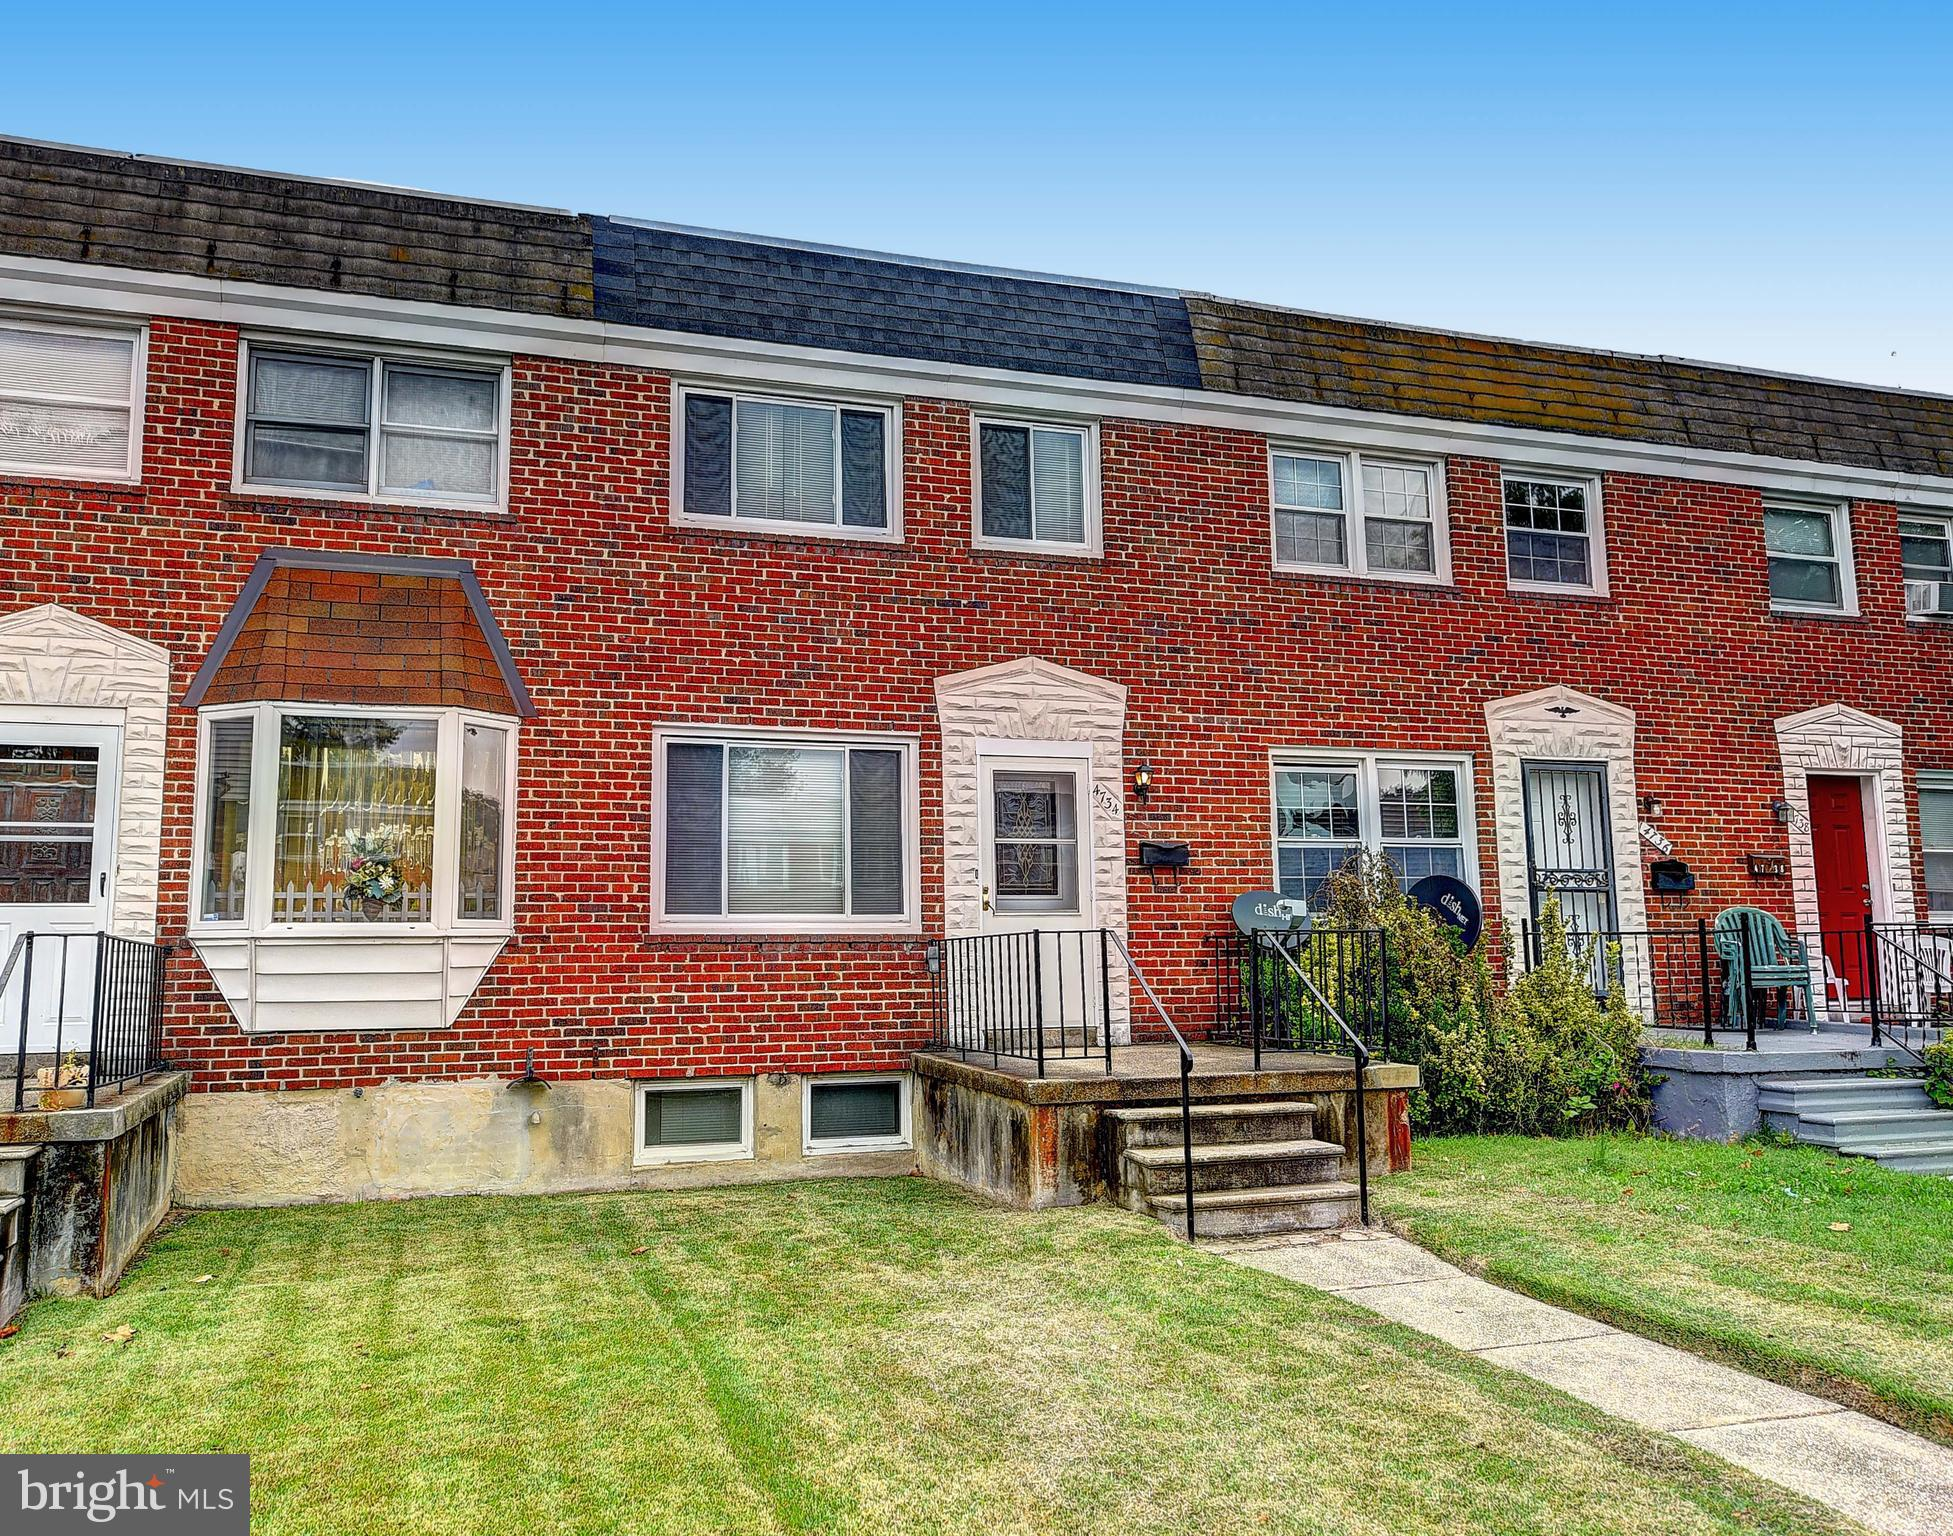 Renovated 3bd, 2 full baths.  Hardwood floors, granite countertops, stainless steel appliances.  Kitchen and baths remodeled, new flooring throughout.  Covered back patio and parking pad.  Finished basement with full bath and utility/storage space.  Make your appointment to see today!